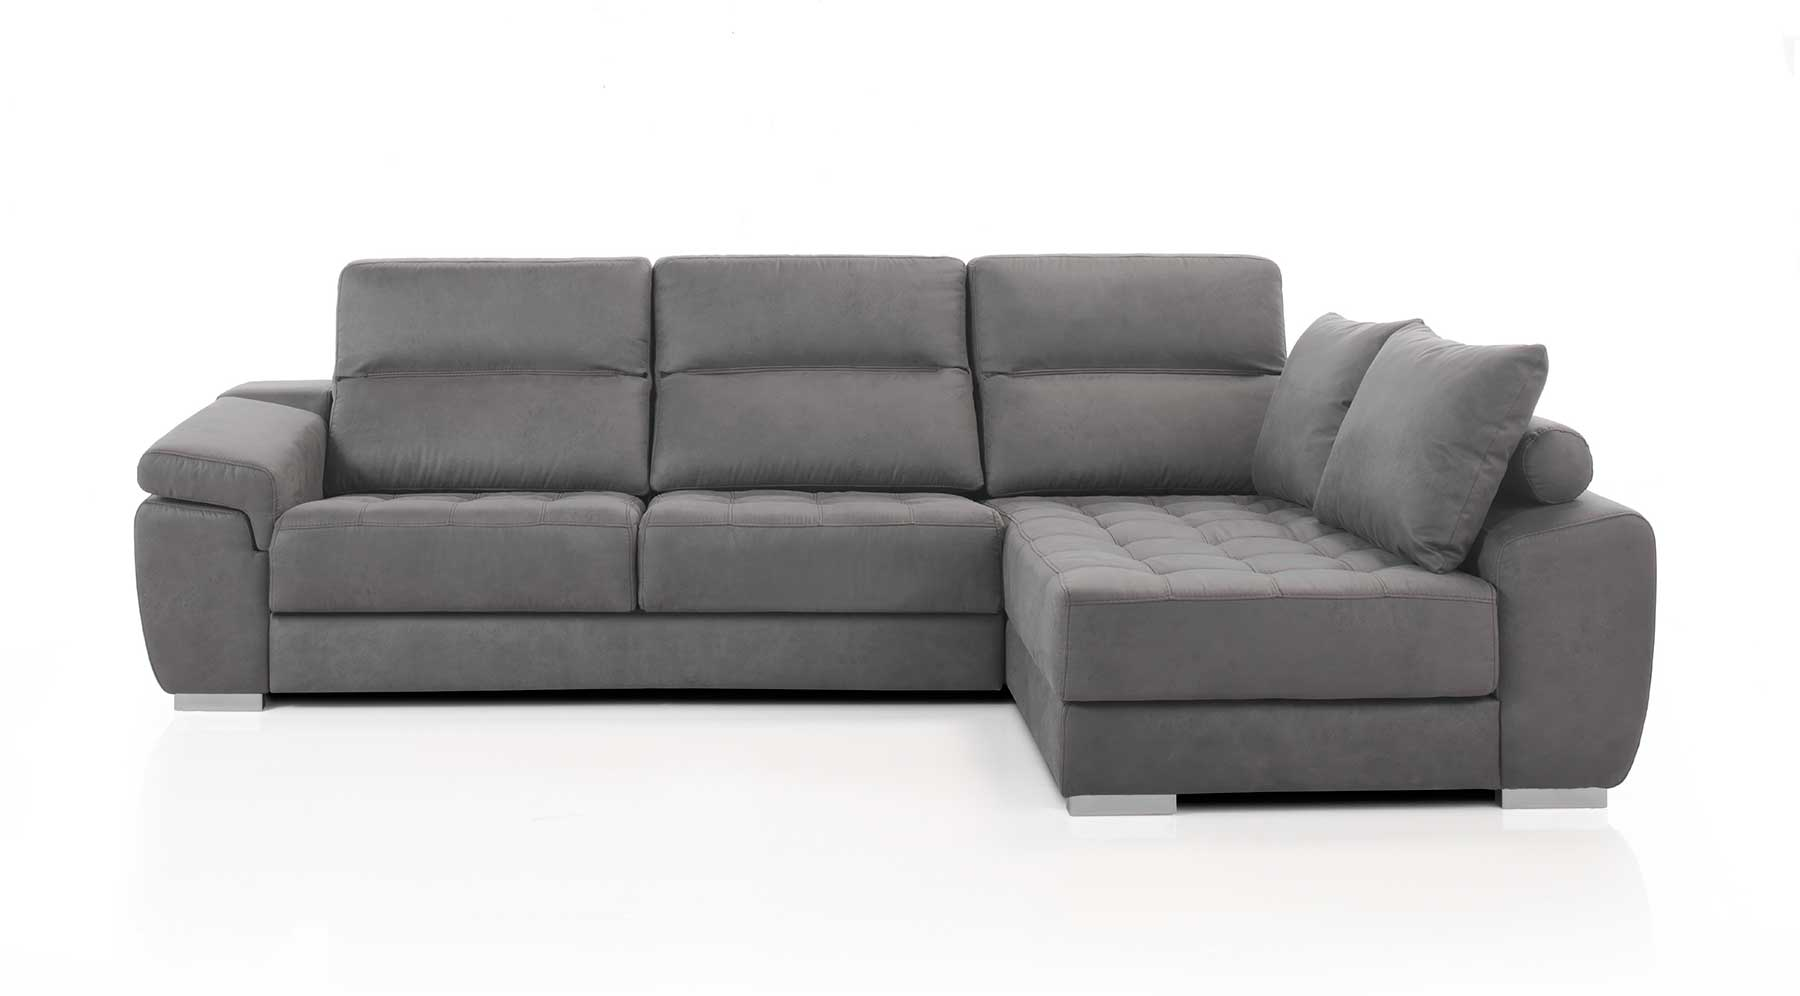 SOFÁ CHAISELONGUE TALIO - R.G